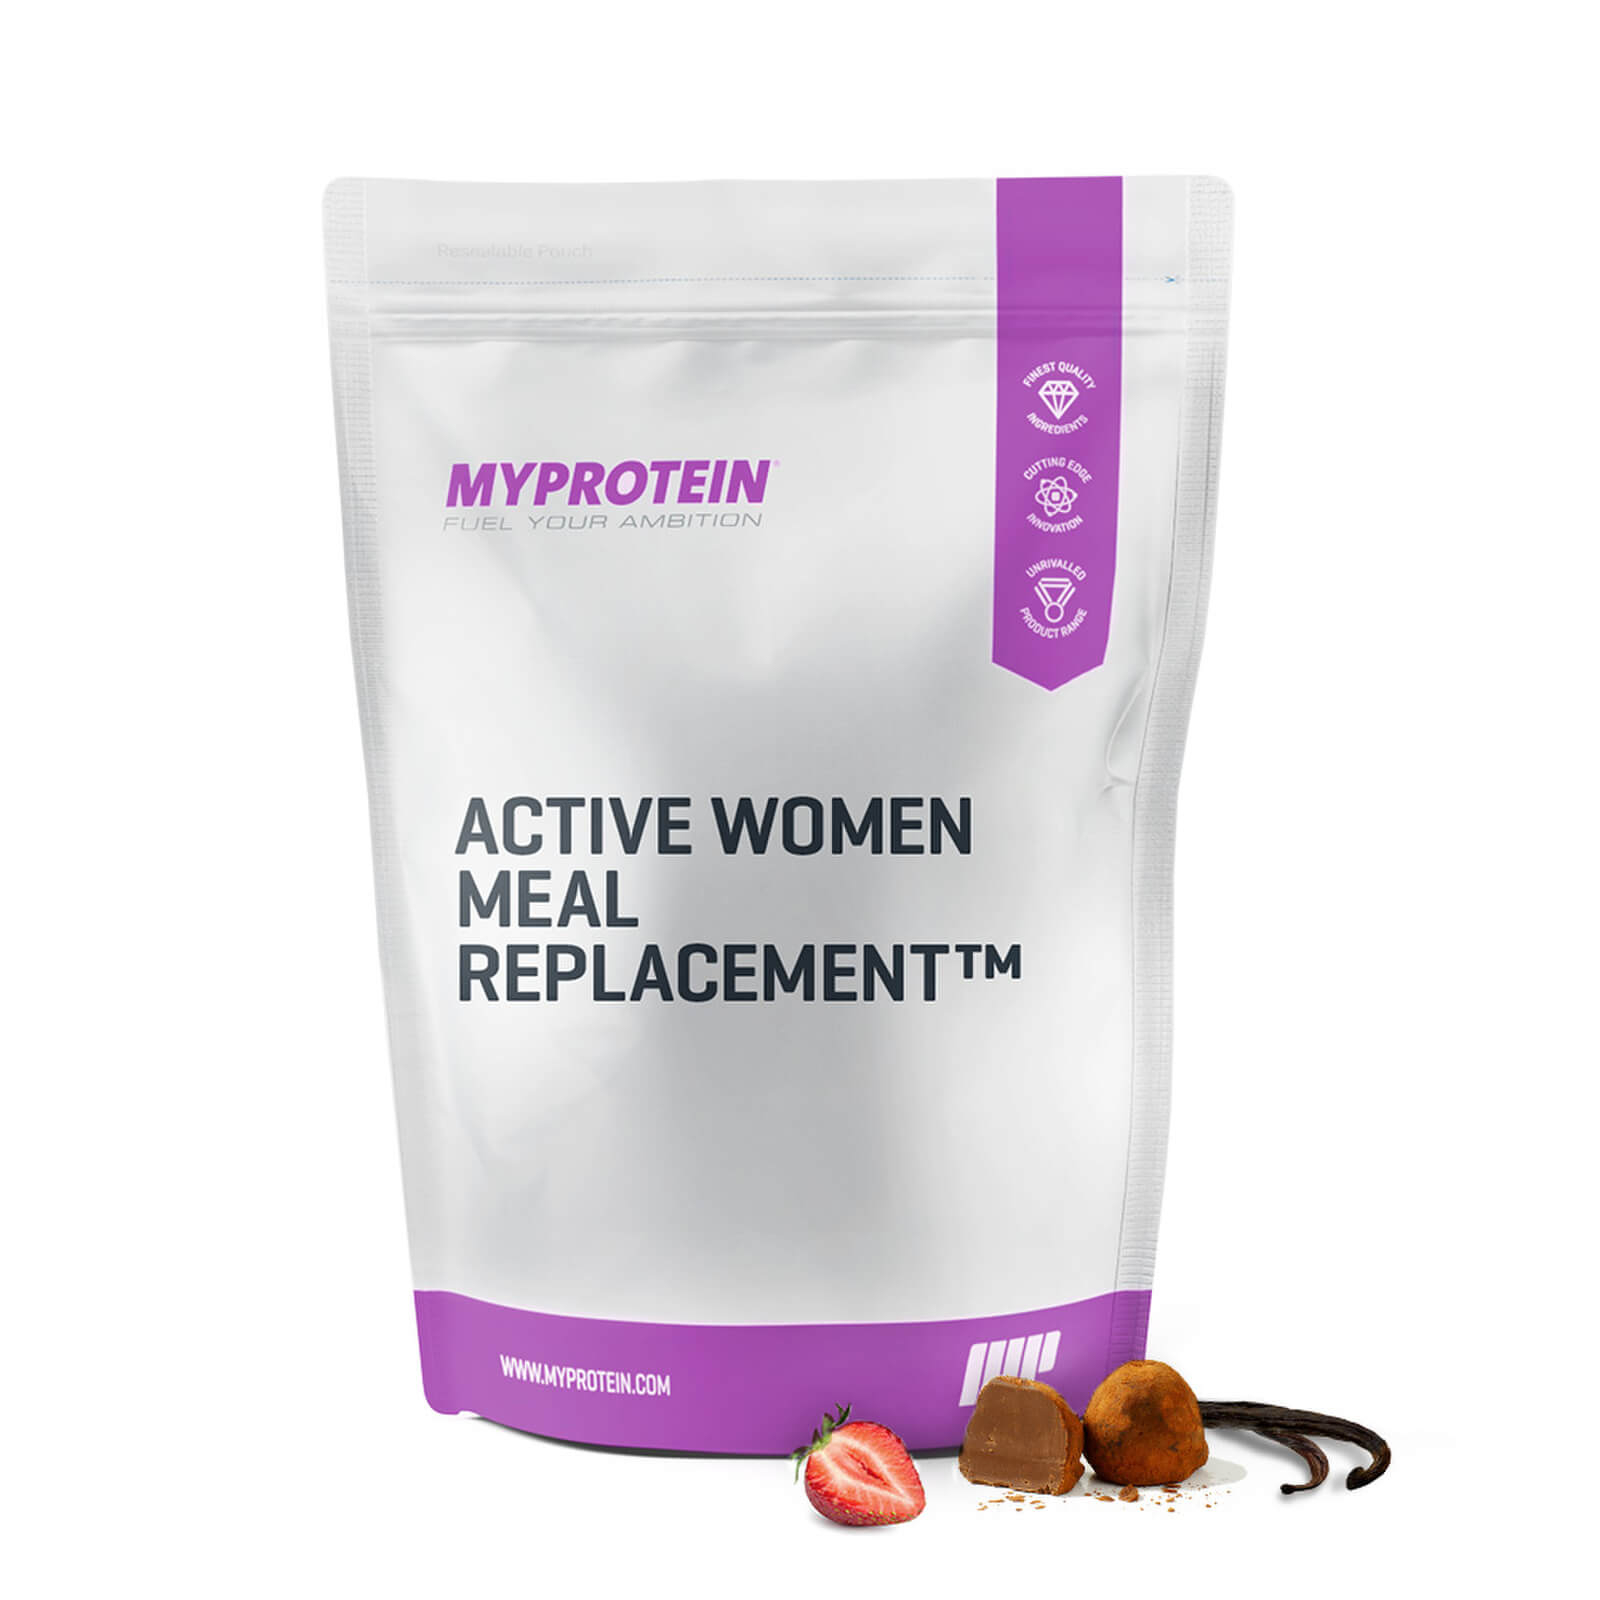 Active Women Meal Replacement ™